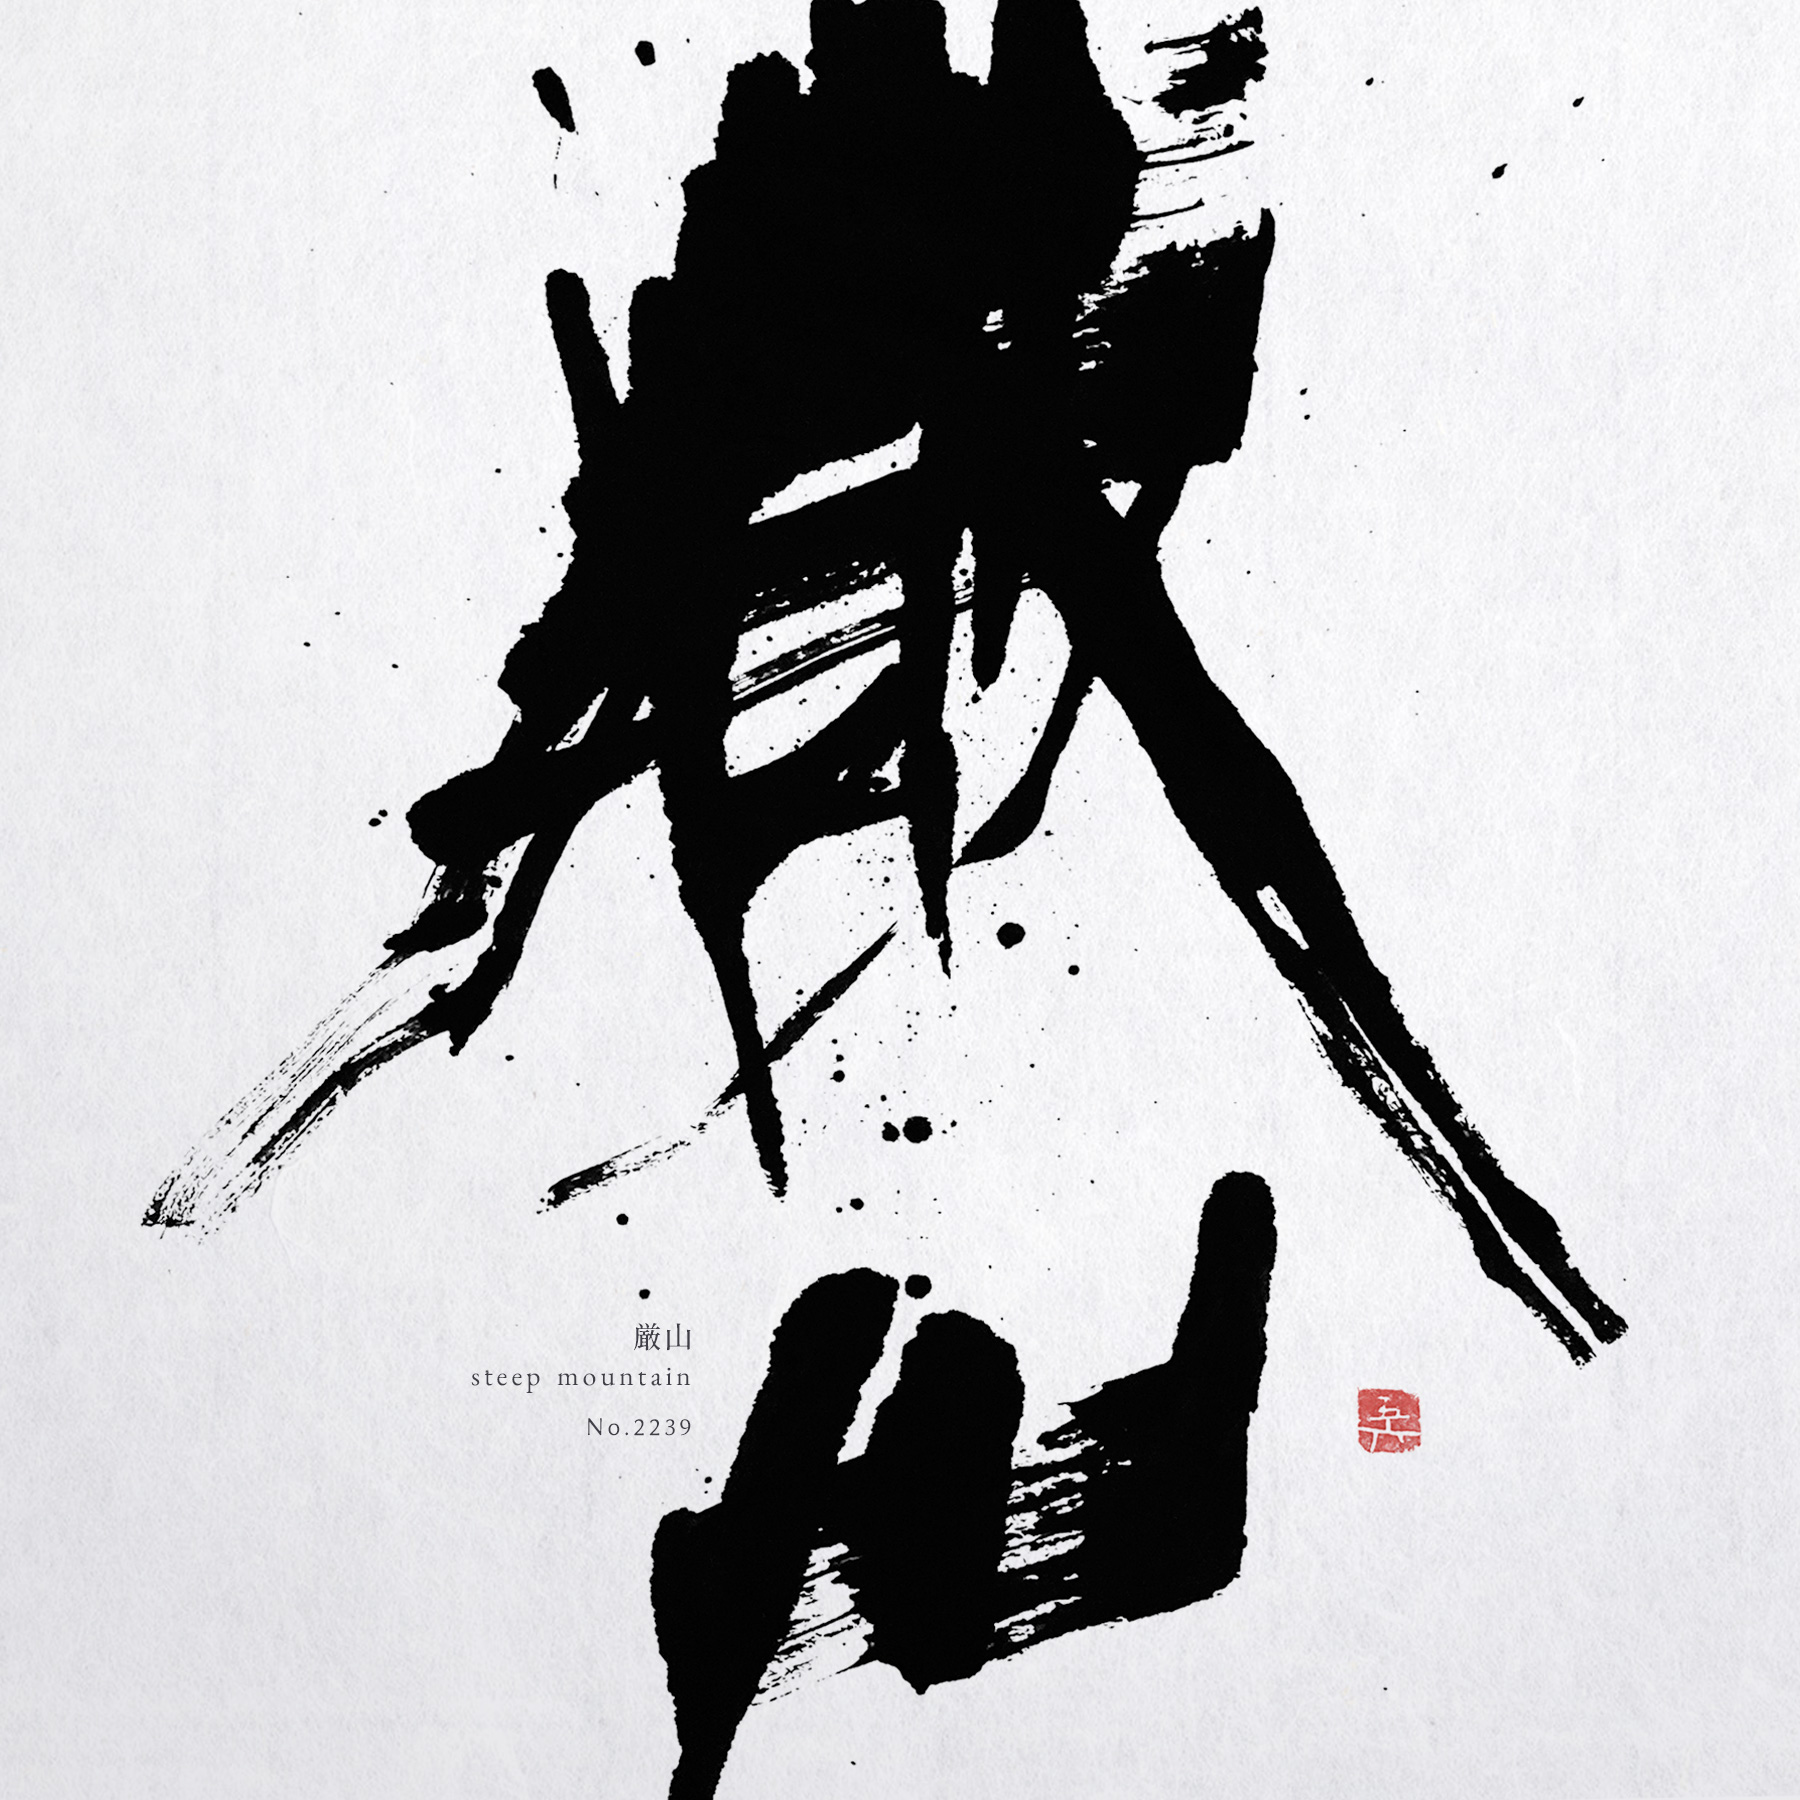 厳山 | steep mountain 書道作品 japaneseart japanese calligraphy 書家 田川悟郎 Goroh Tagawa